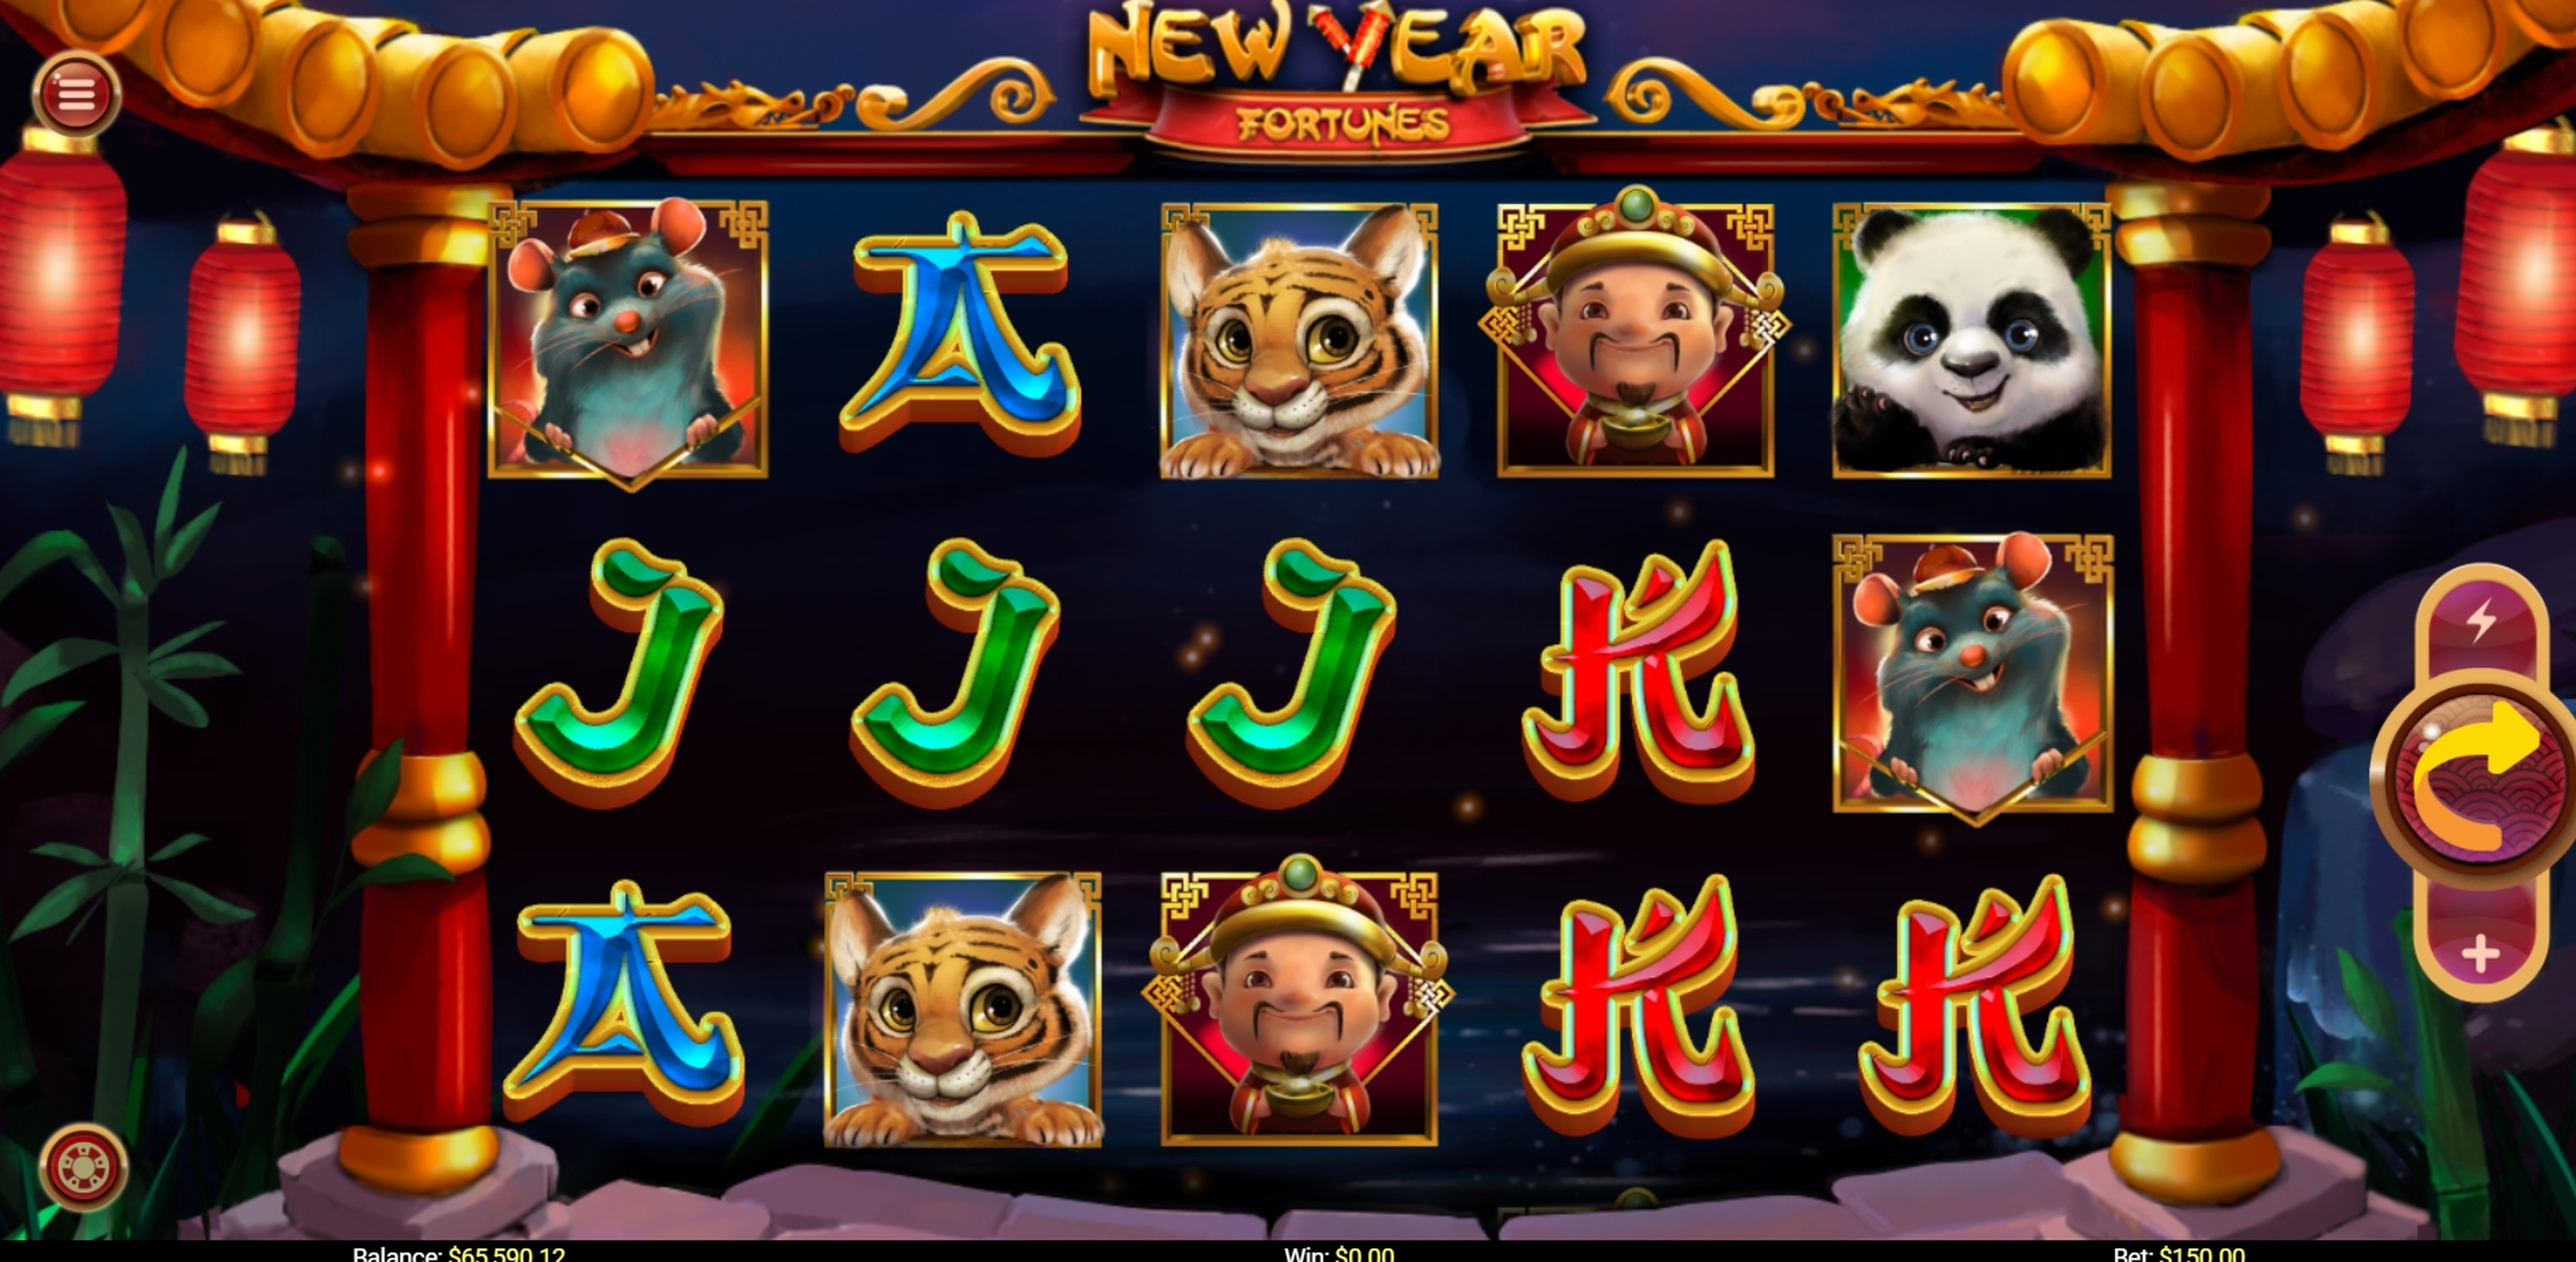 Reels in New Year Fortunes Slot Game by Mobilots